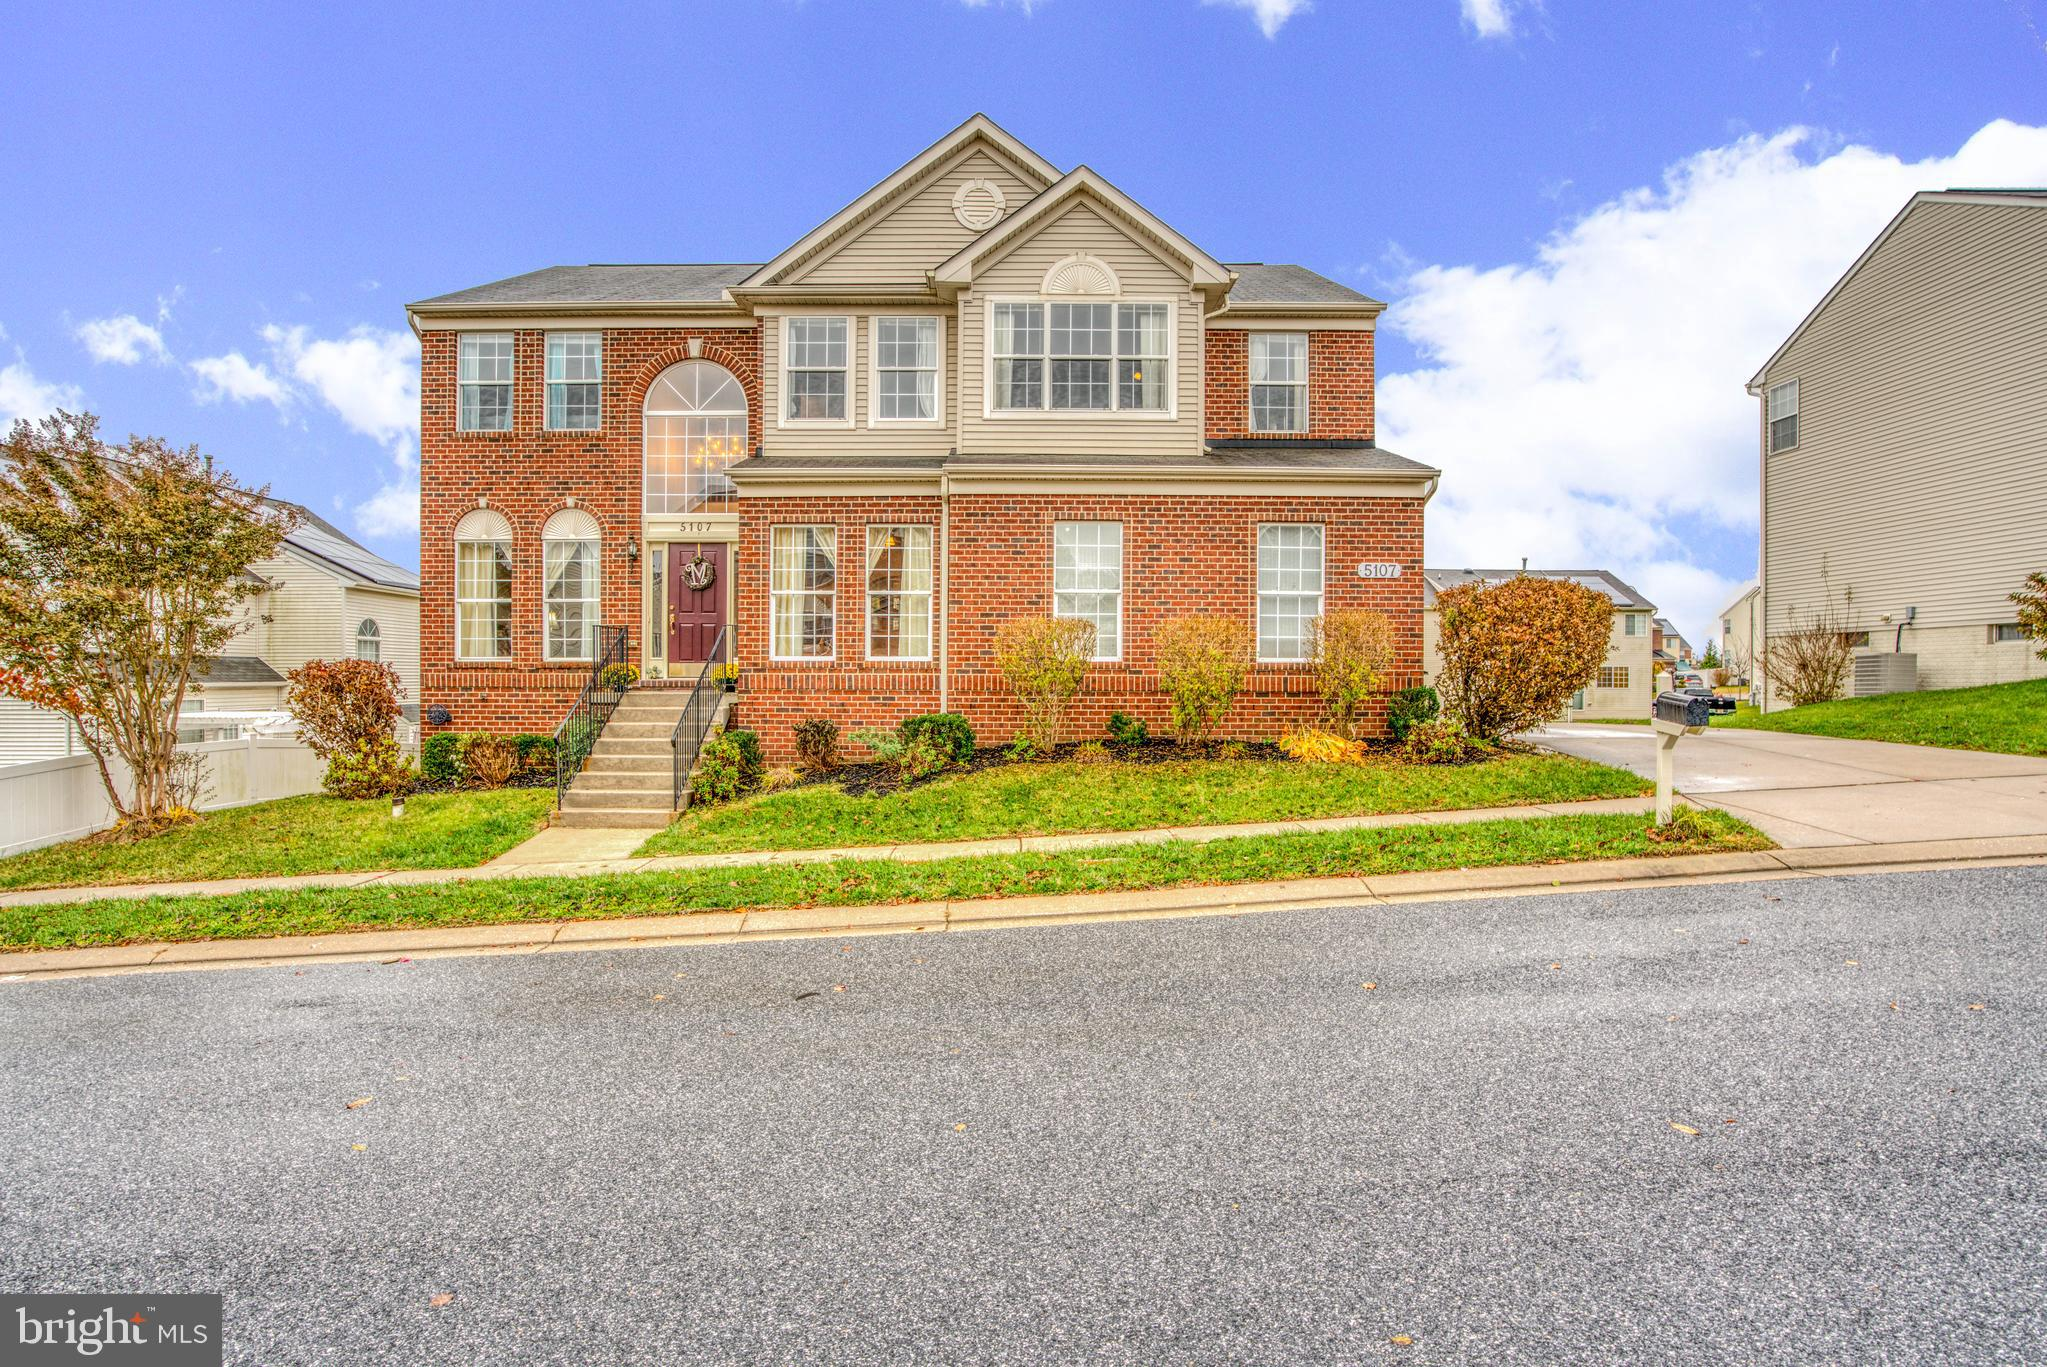 5107 GLOW HAVEN WAY, PERRY HALL, MD 21128